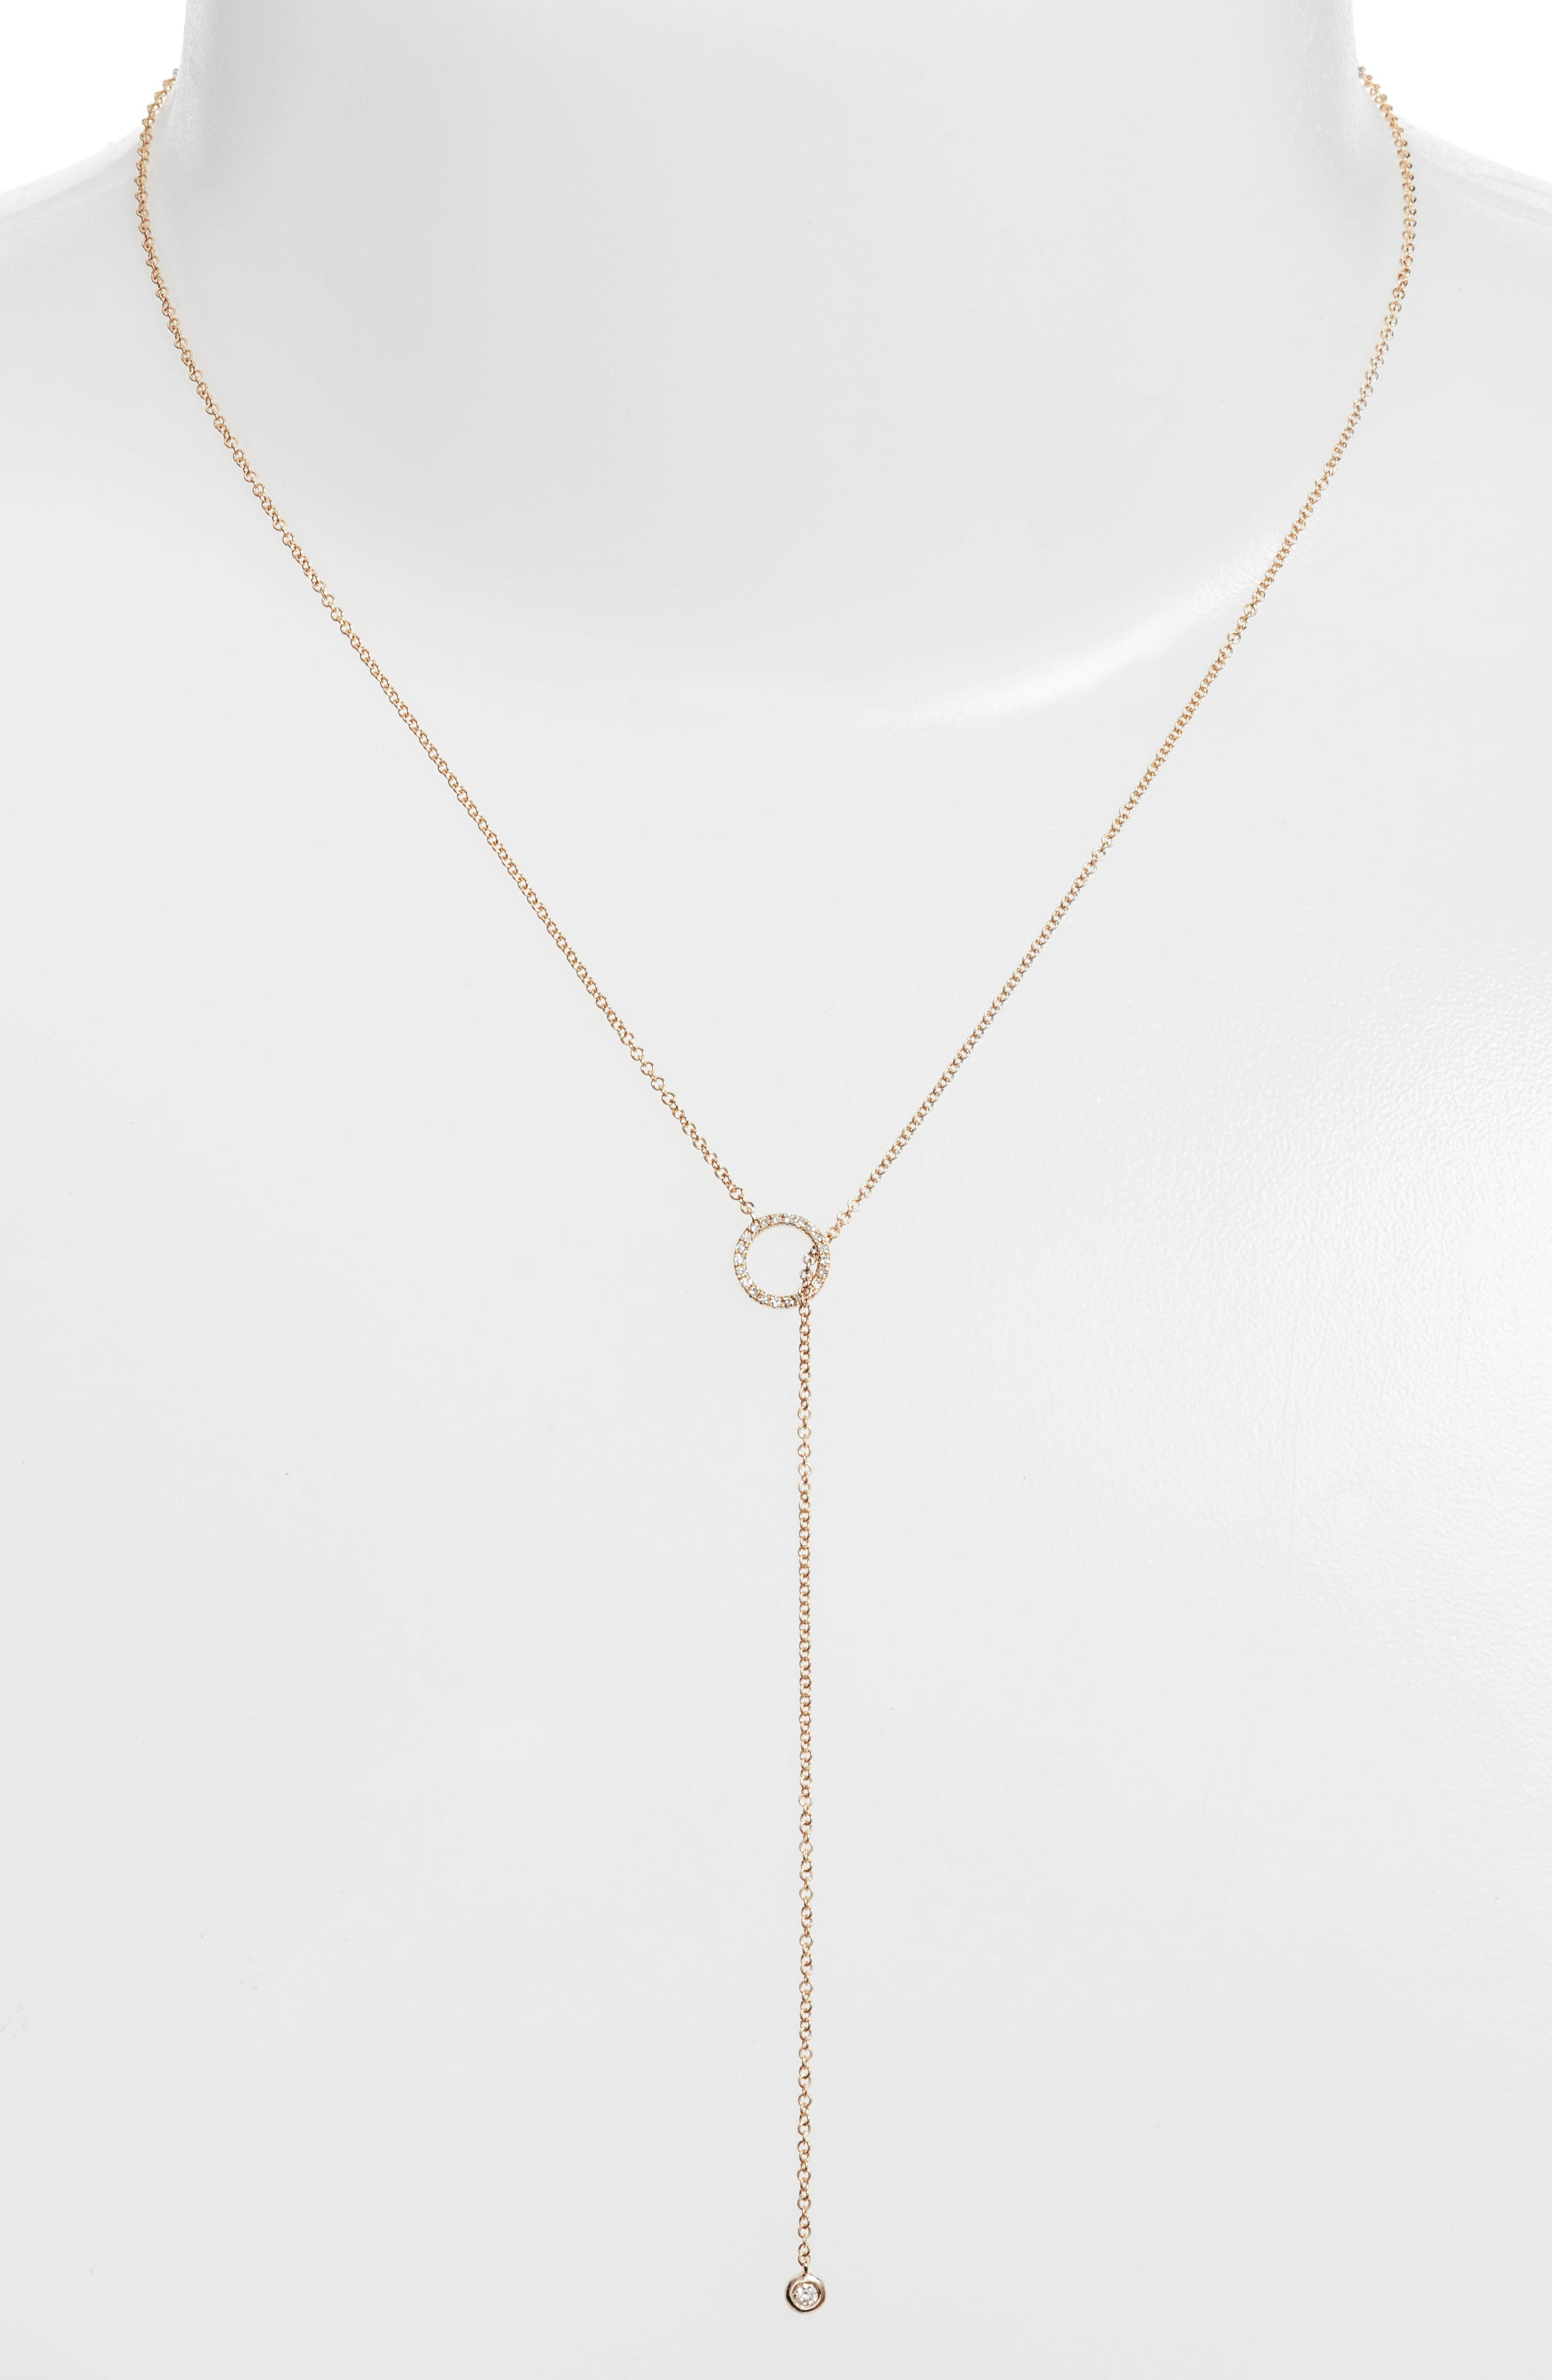 EF COLLECTION, Open Circle Lariat Necklace, Alternate thumbnail 2, color, YELLOW GOLD